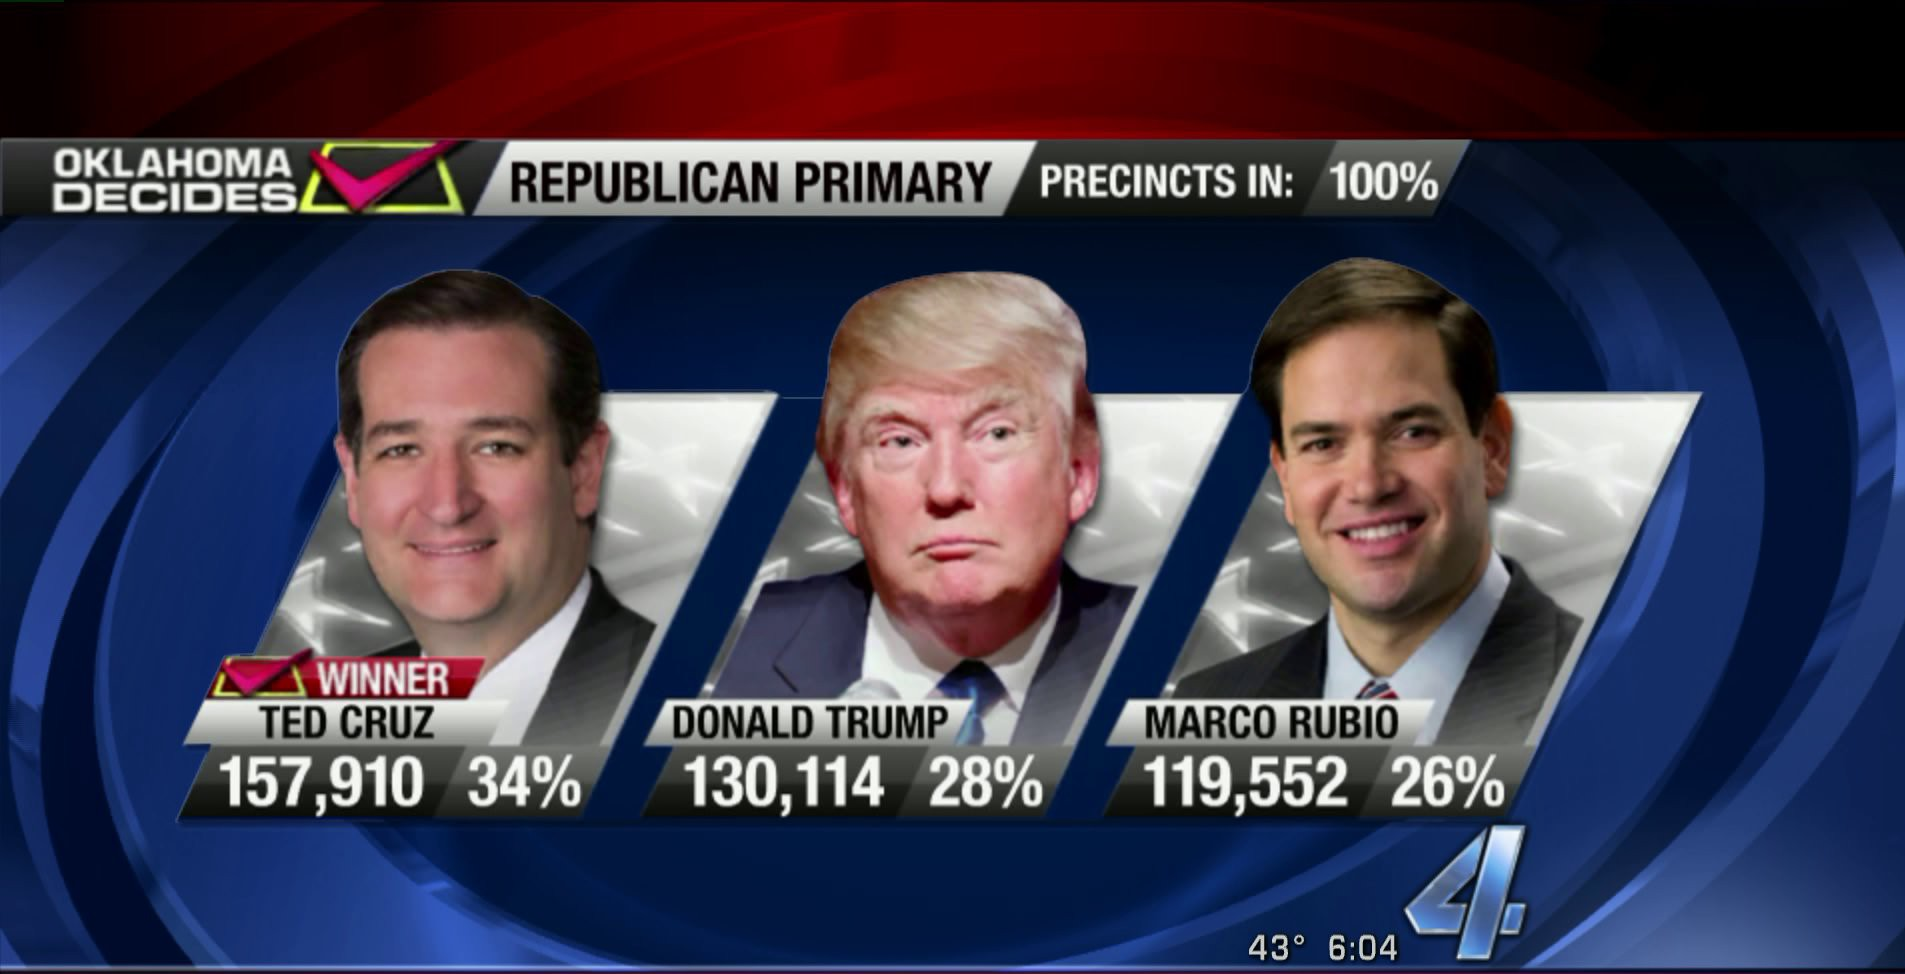 Republican primary results in Oklahoma